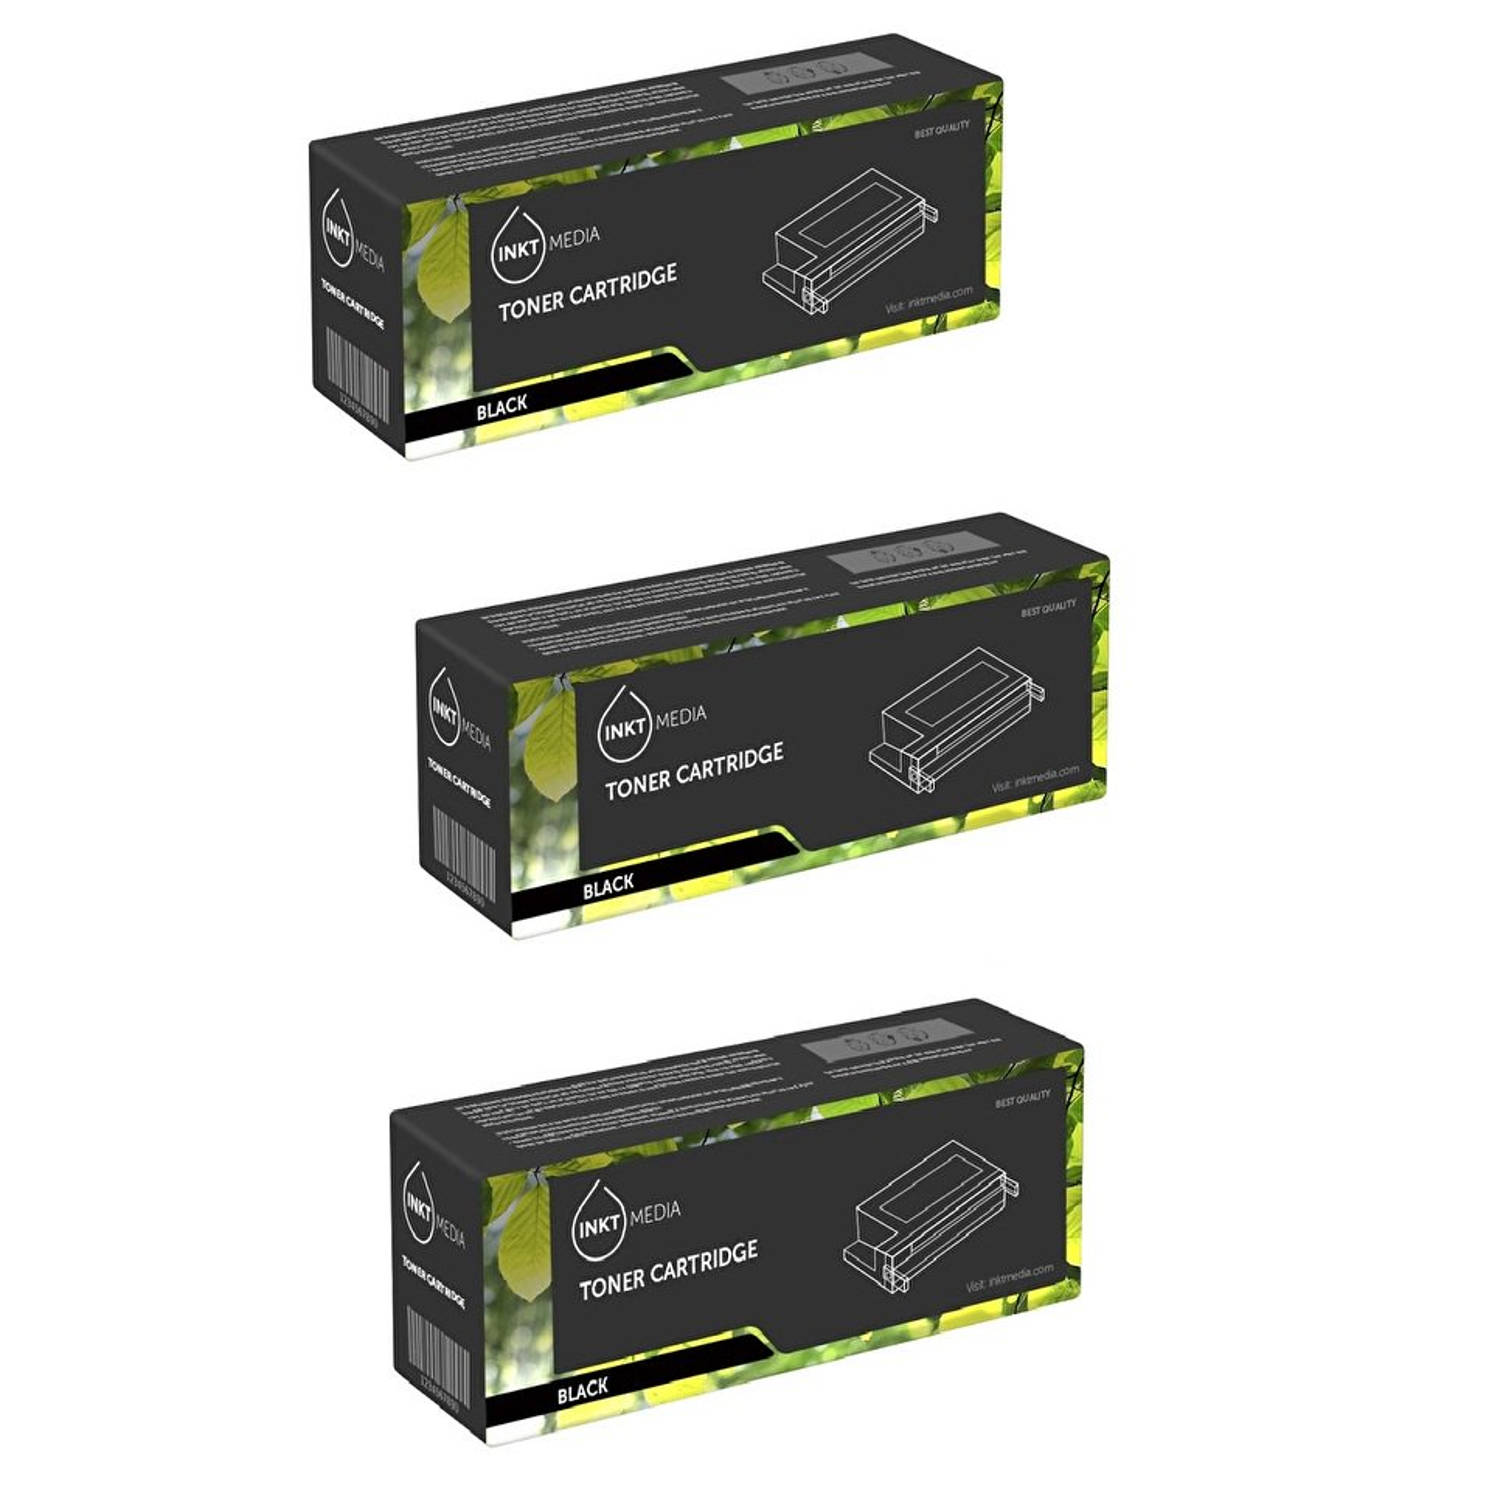 Inktmedia® - Toner cartridge - Alternatief voor de Brother TN-2010 zwart 3x toner